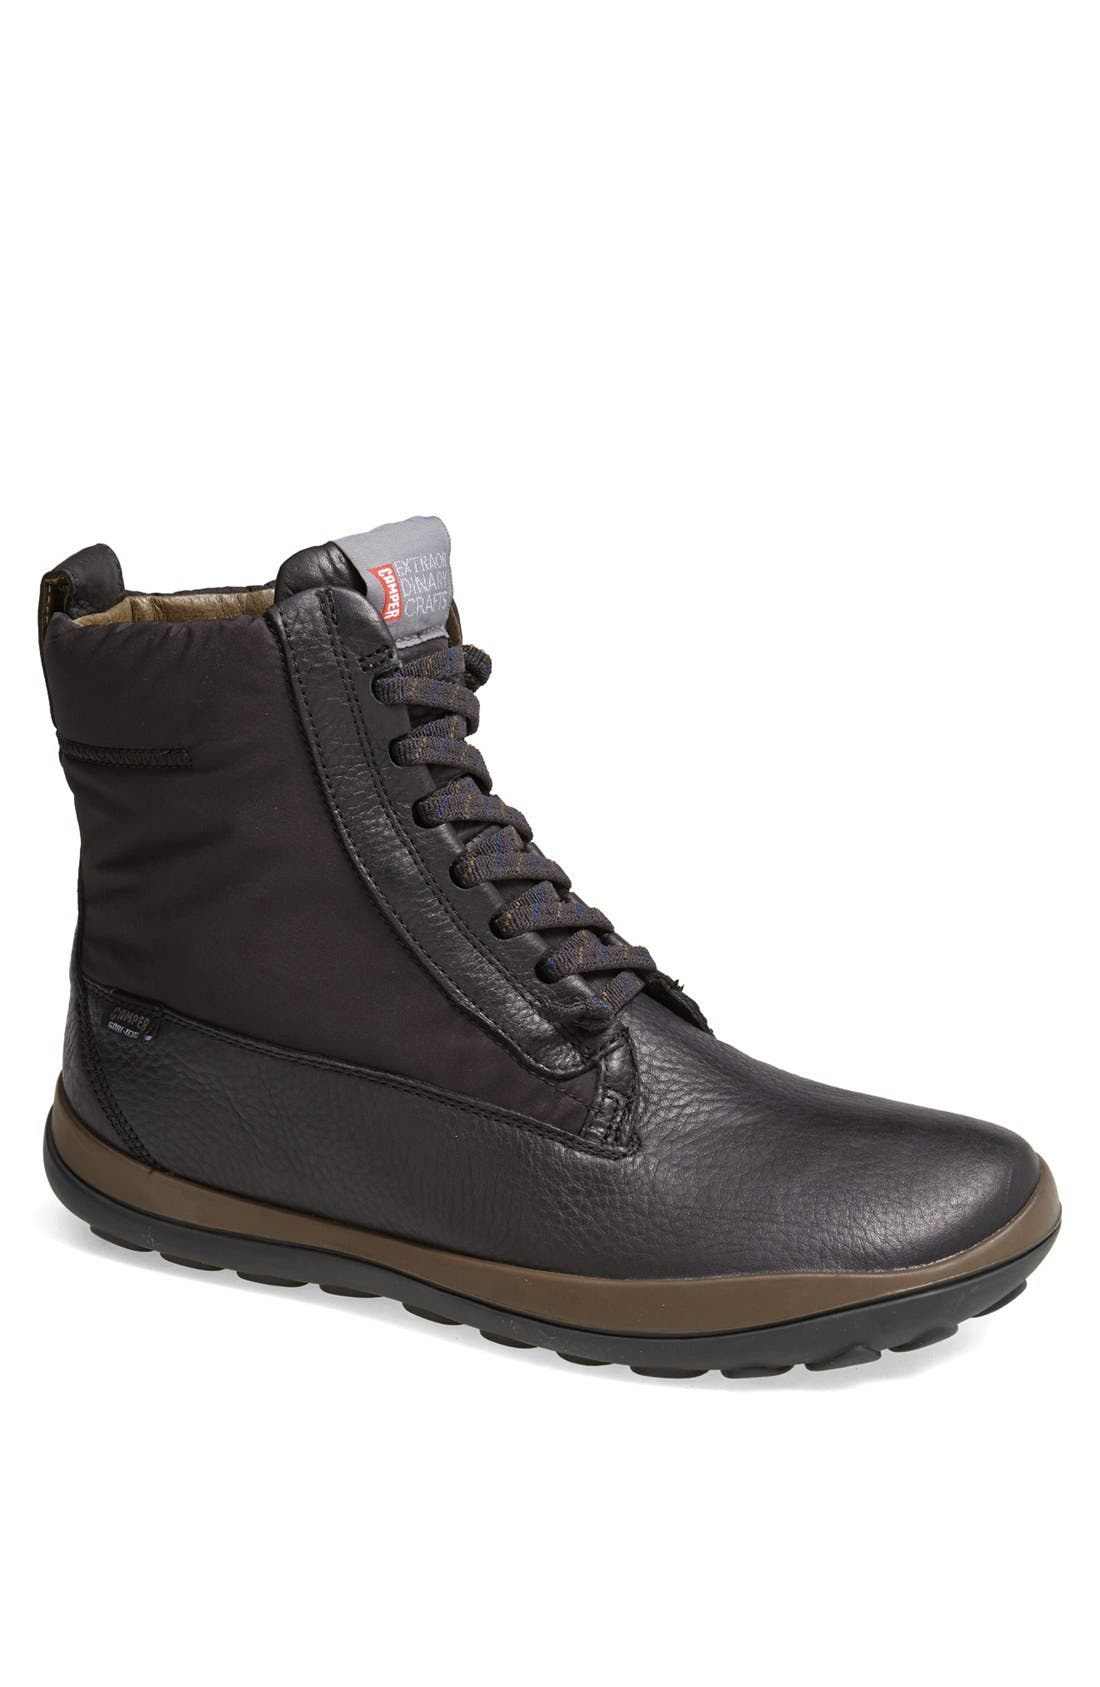 Main Image - Camper 'Peu Pista' Gore-Tex® Snow Boot (Men)